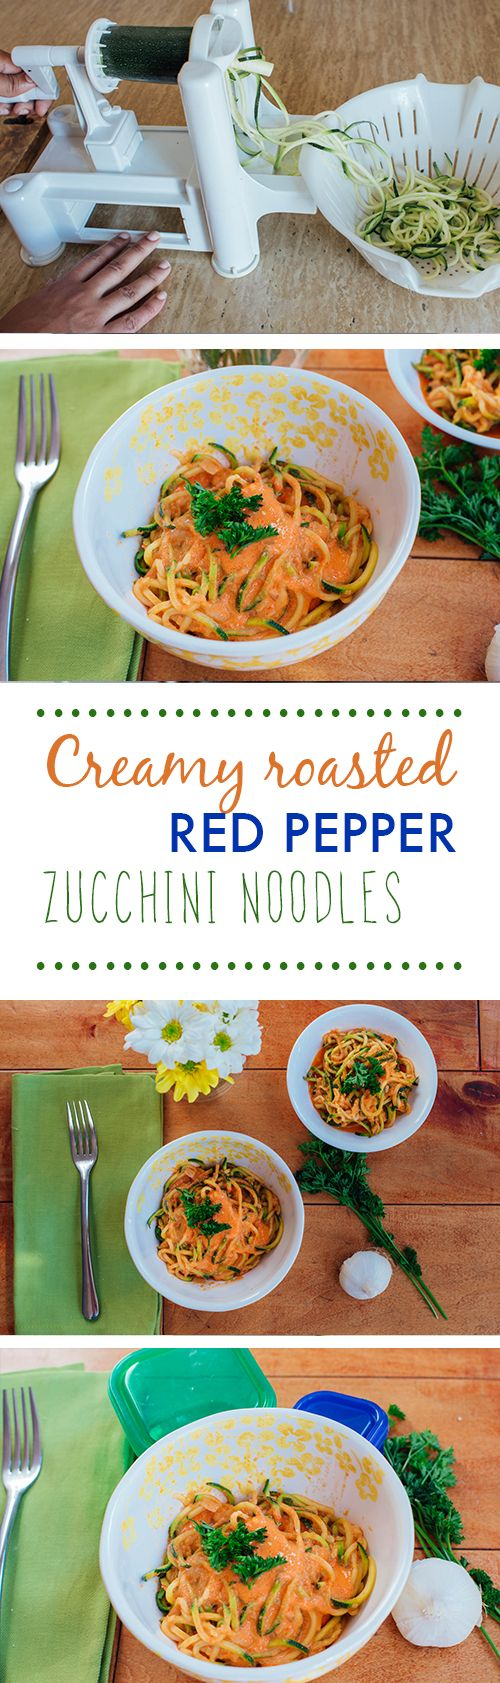 Roasted red pepper and goat cheese make for the perfect zoodle sauce. http://www.beachbody.com/beachbodyblog/nutrition/creamy-roasted-red-pepper-zucchini-noodles?code=SOCIAL_21F_PI  health // fitness // fitspo // motivation // exercise // 21 Day Fix EXTREME // Meal Prep // diet // nutrition // Inspiration // quote // quotes // recipe // recipes // zoodles // clean eating // portion control